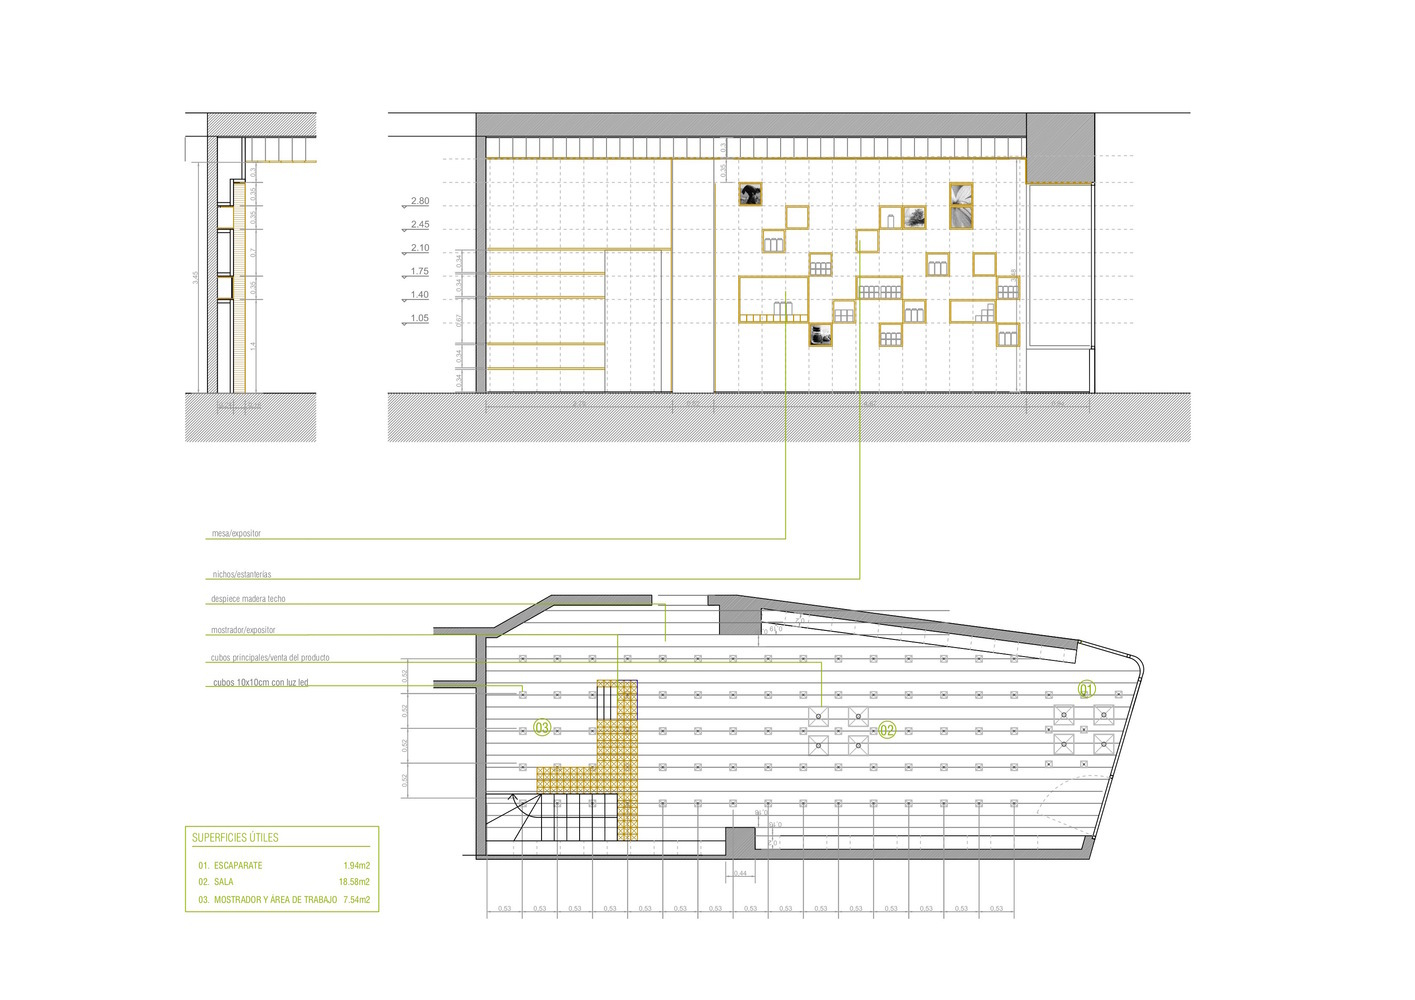 Gallery of Retail Stores Under 100 Square Meters: Examples in Plan